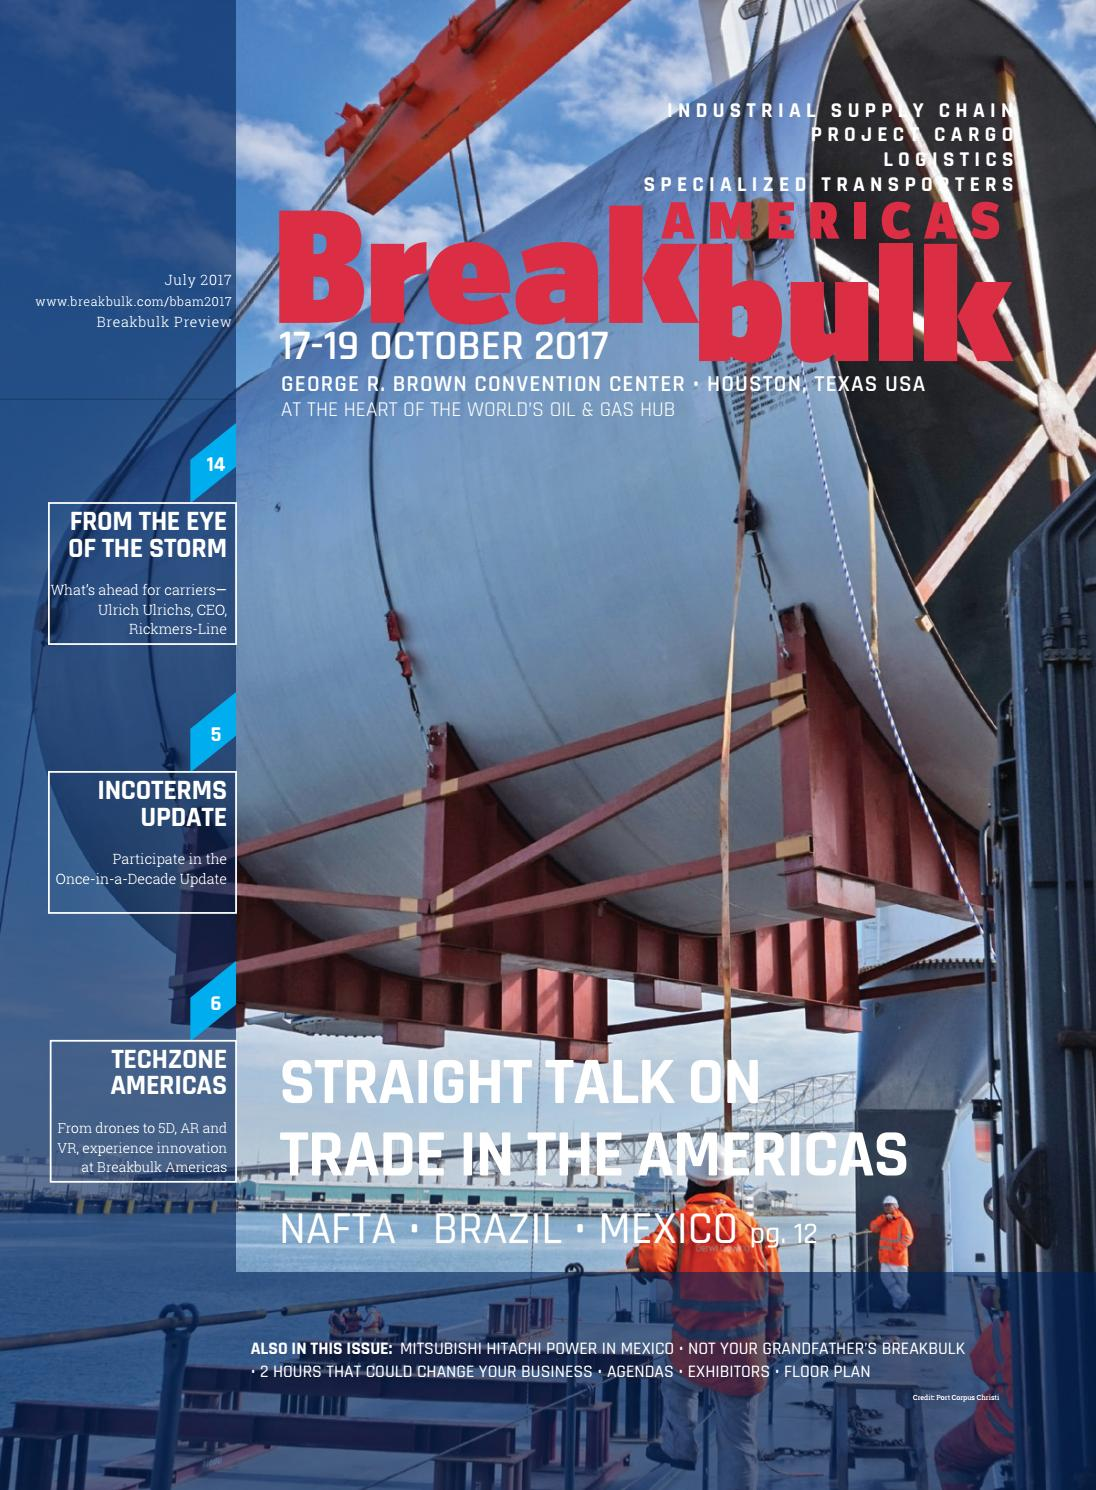 Breakbulk Americas 2017 Event Preview By Events Media Line Up Mitsubishi Hitachi Power Systems Ltd Issuu